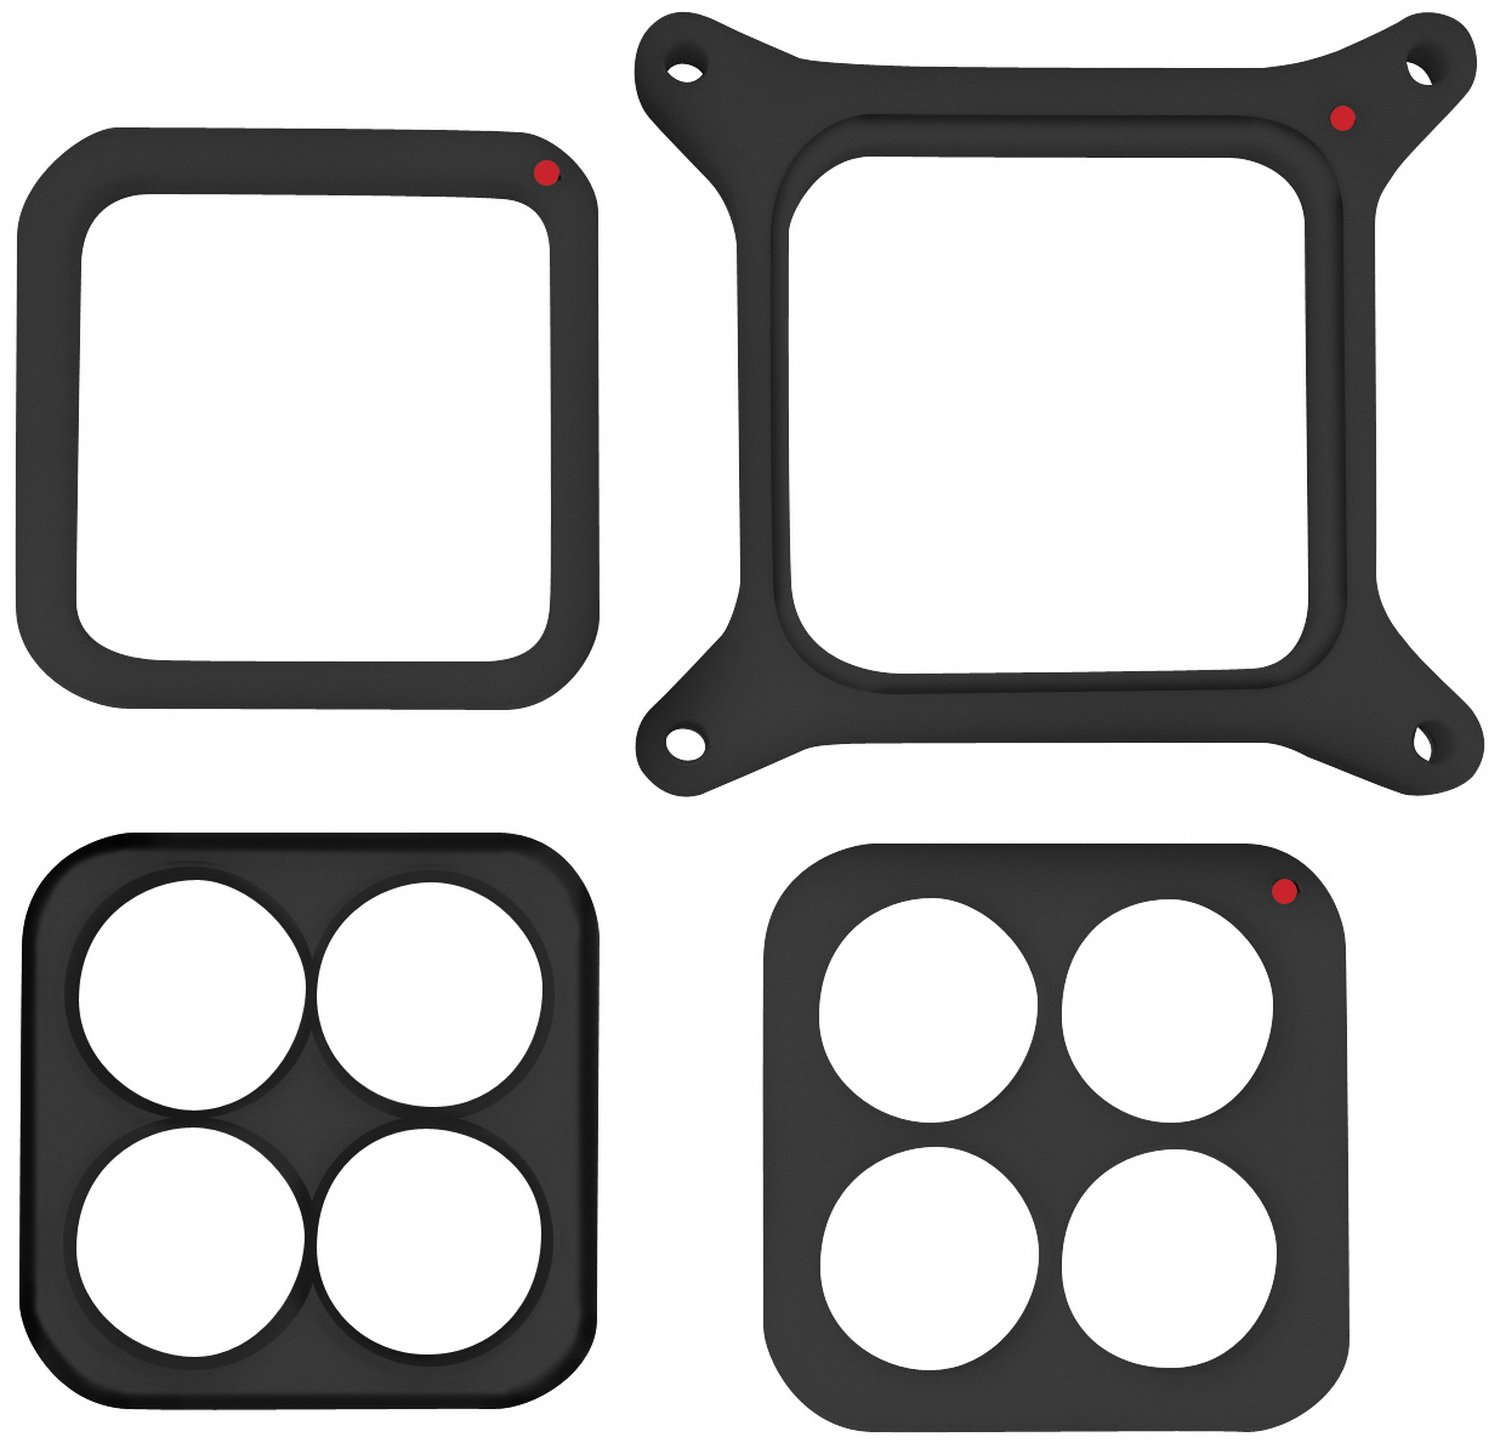 Proform 67160C 1'' Thick Trackside Phenolic Square Bore Carburetor Spacer Kit with Open/4-Hole/Tapered 4 Hole